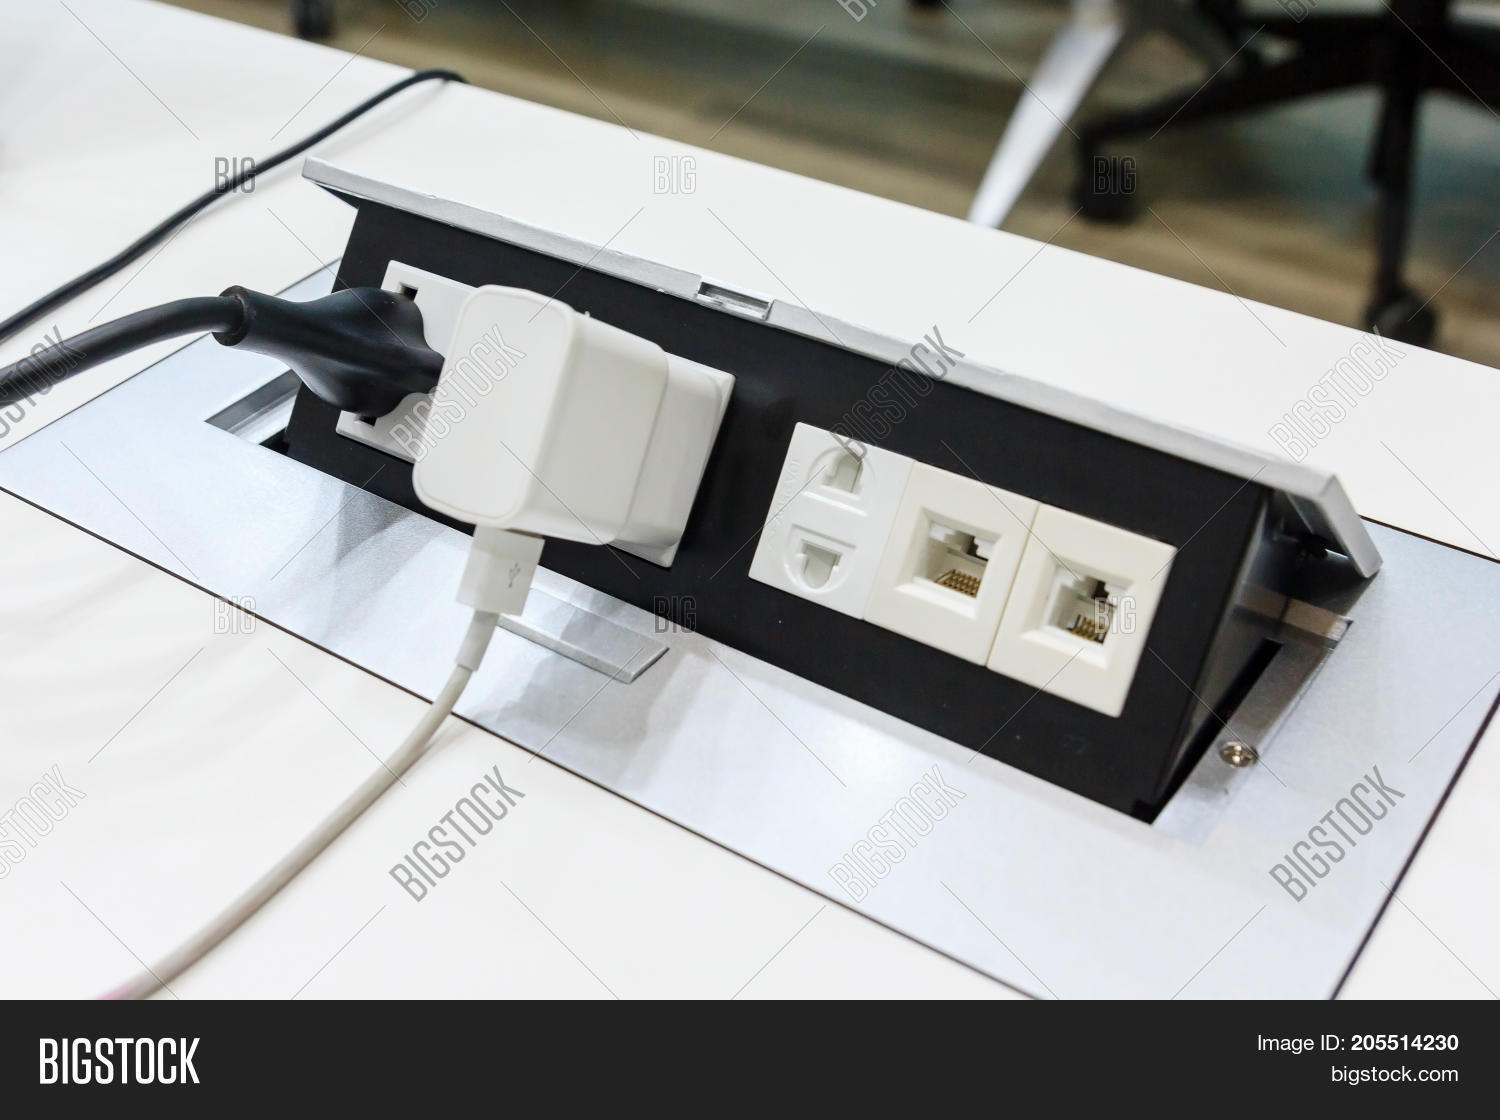 hight resolution of electrical outlet with dual 3 pin phone jack plugs and network plugs on a white table